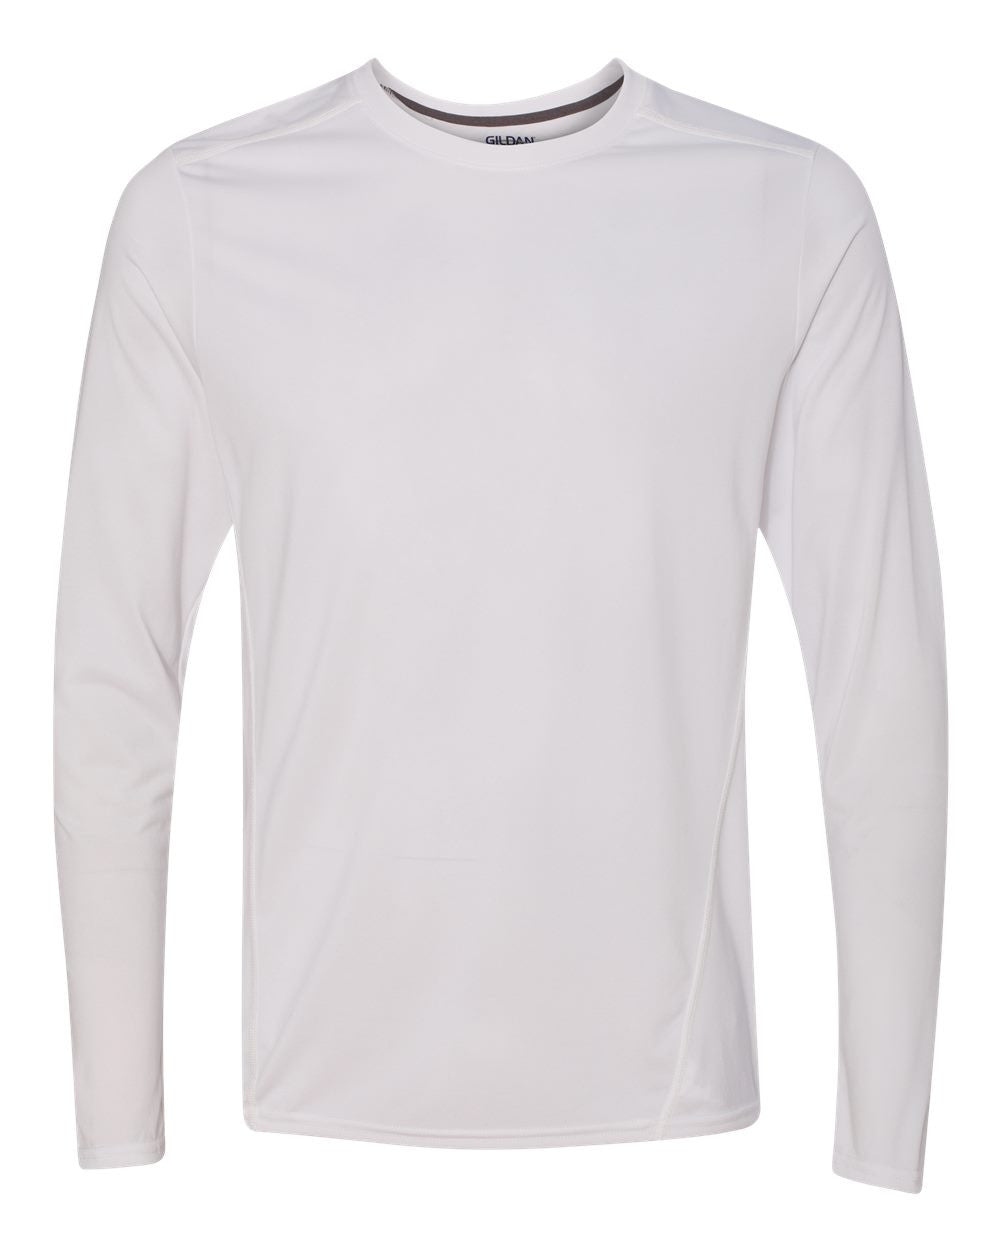 3 pack Performance tech long sleeves by Gildan